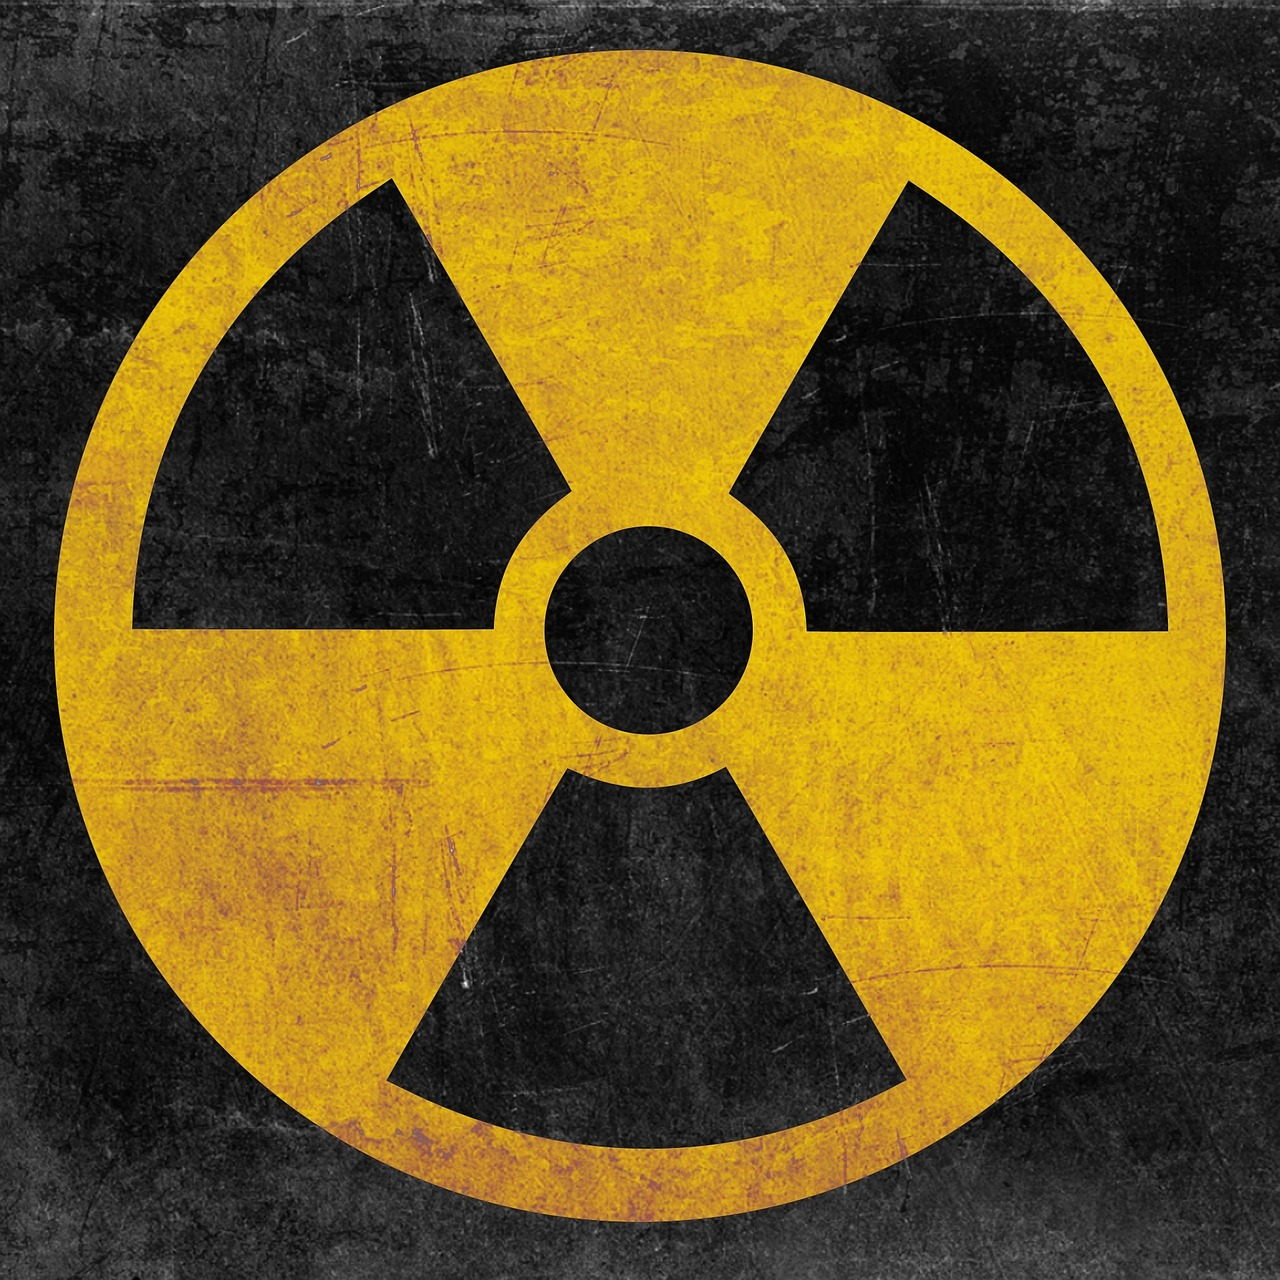 Breaking Point How Much Radiation Can The Human Body Tolerate